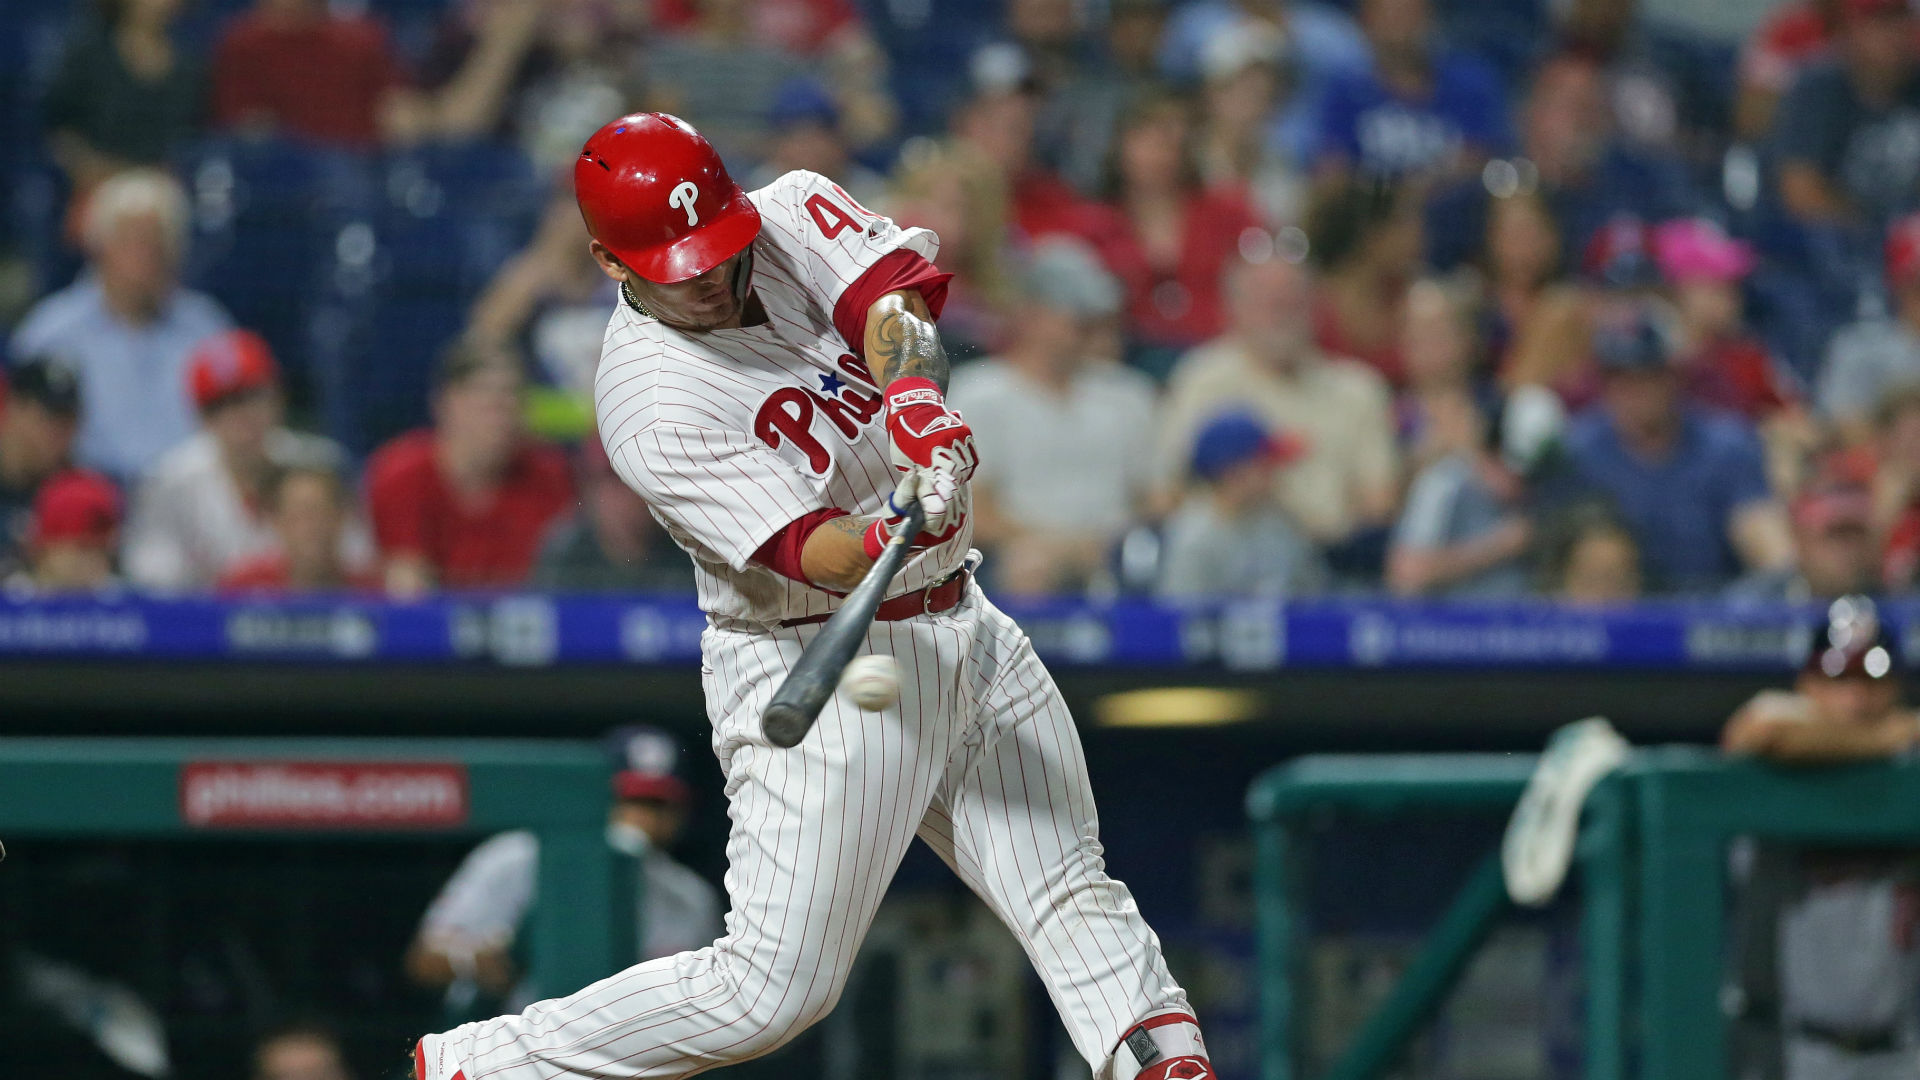 Major League Baseball hot stove: Mets sign catcher Wilson Ramos to 2-year deal